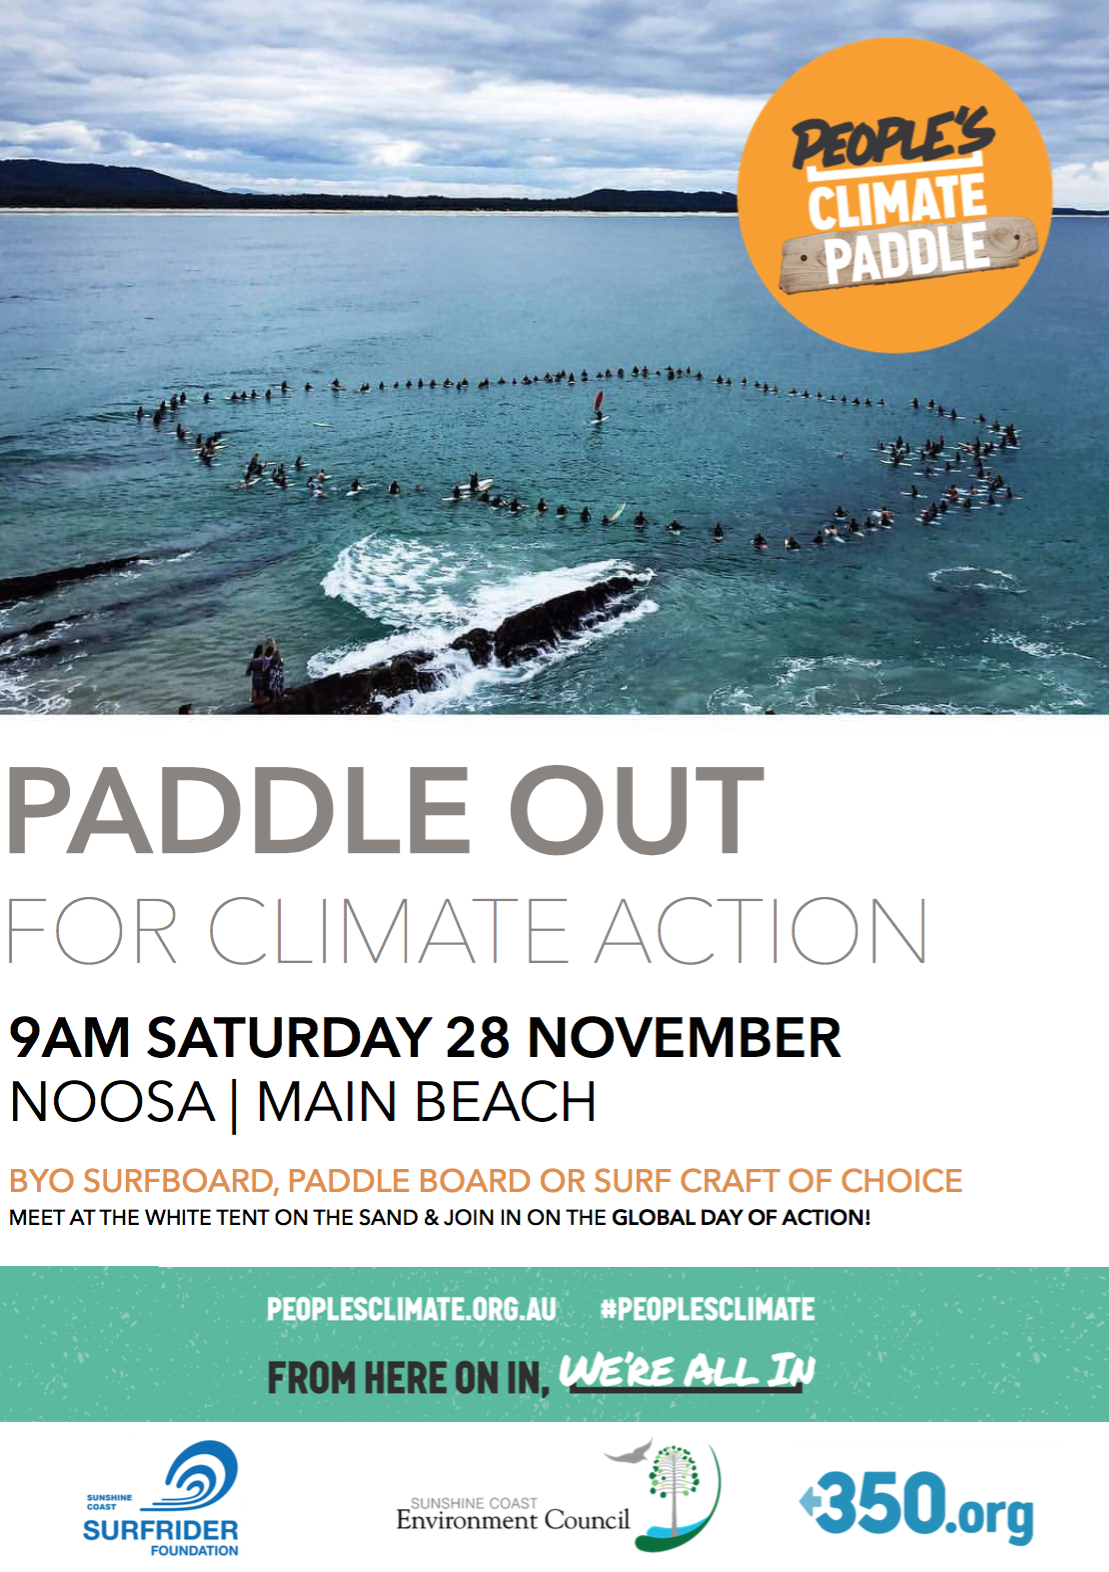 POSTER_-_PADDLE_OUT_FOR_CLIMATE_ACTION.png